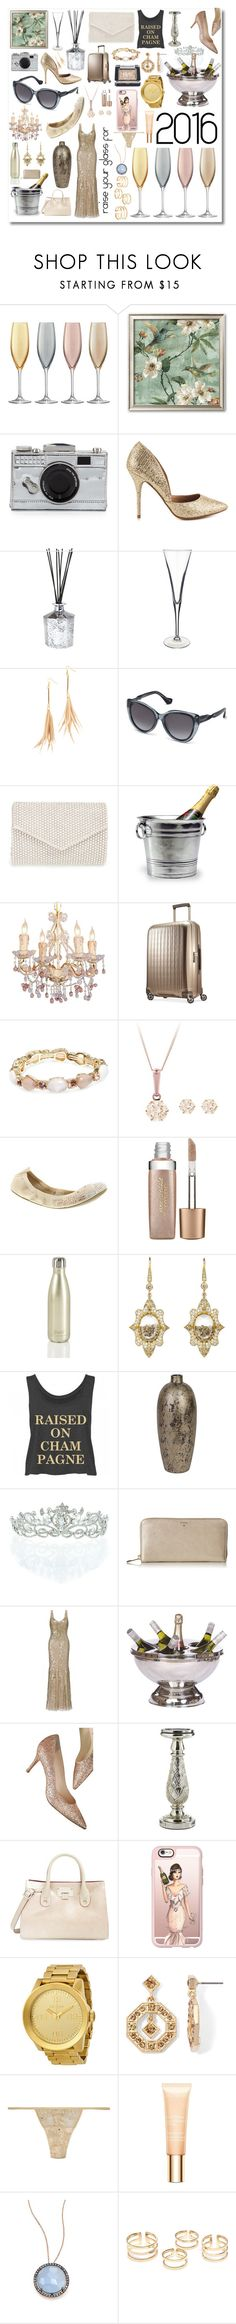 """raise your glass to 2016"" by diydesign ❤ liked on Polyvore featuring interior, interiors, interior design, home, home decor, interior decorating, LSA International, Kate Spade, Chinese Laundry and D.L. & Co."